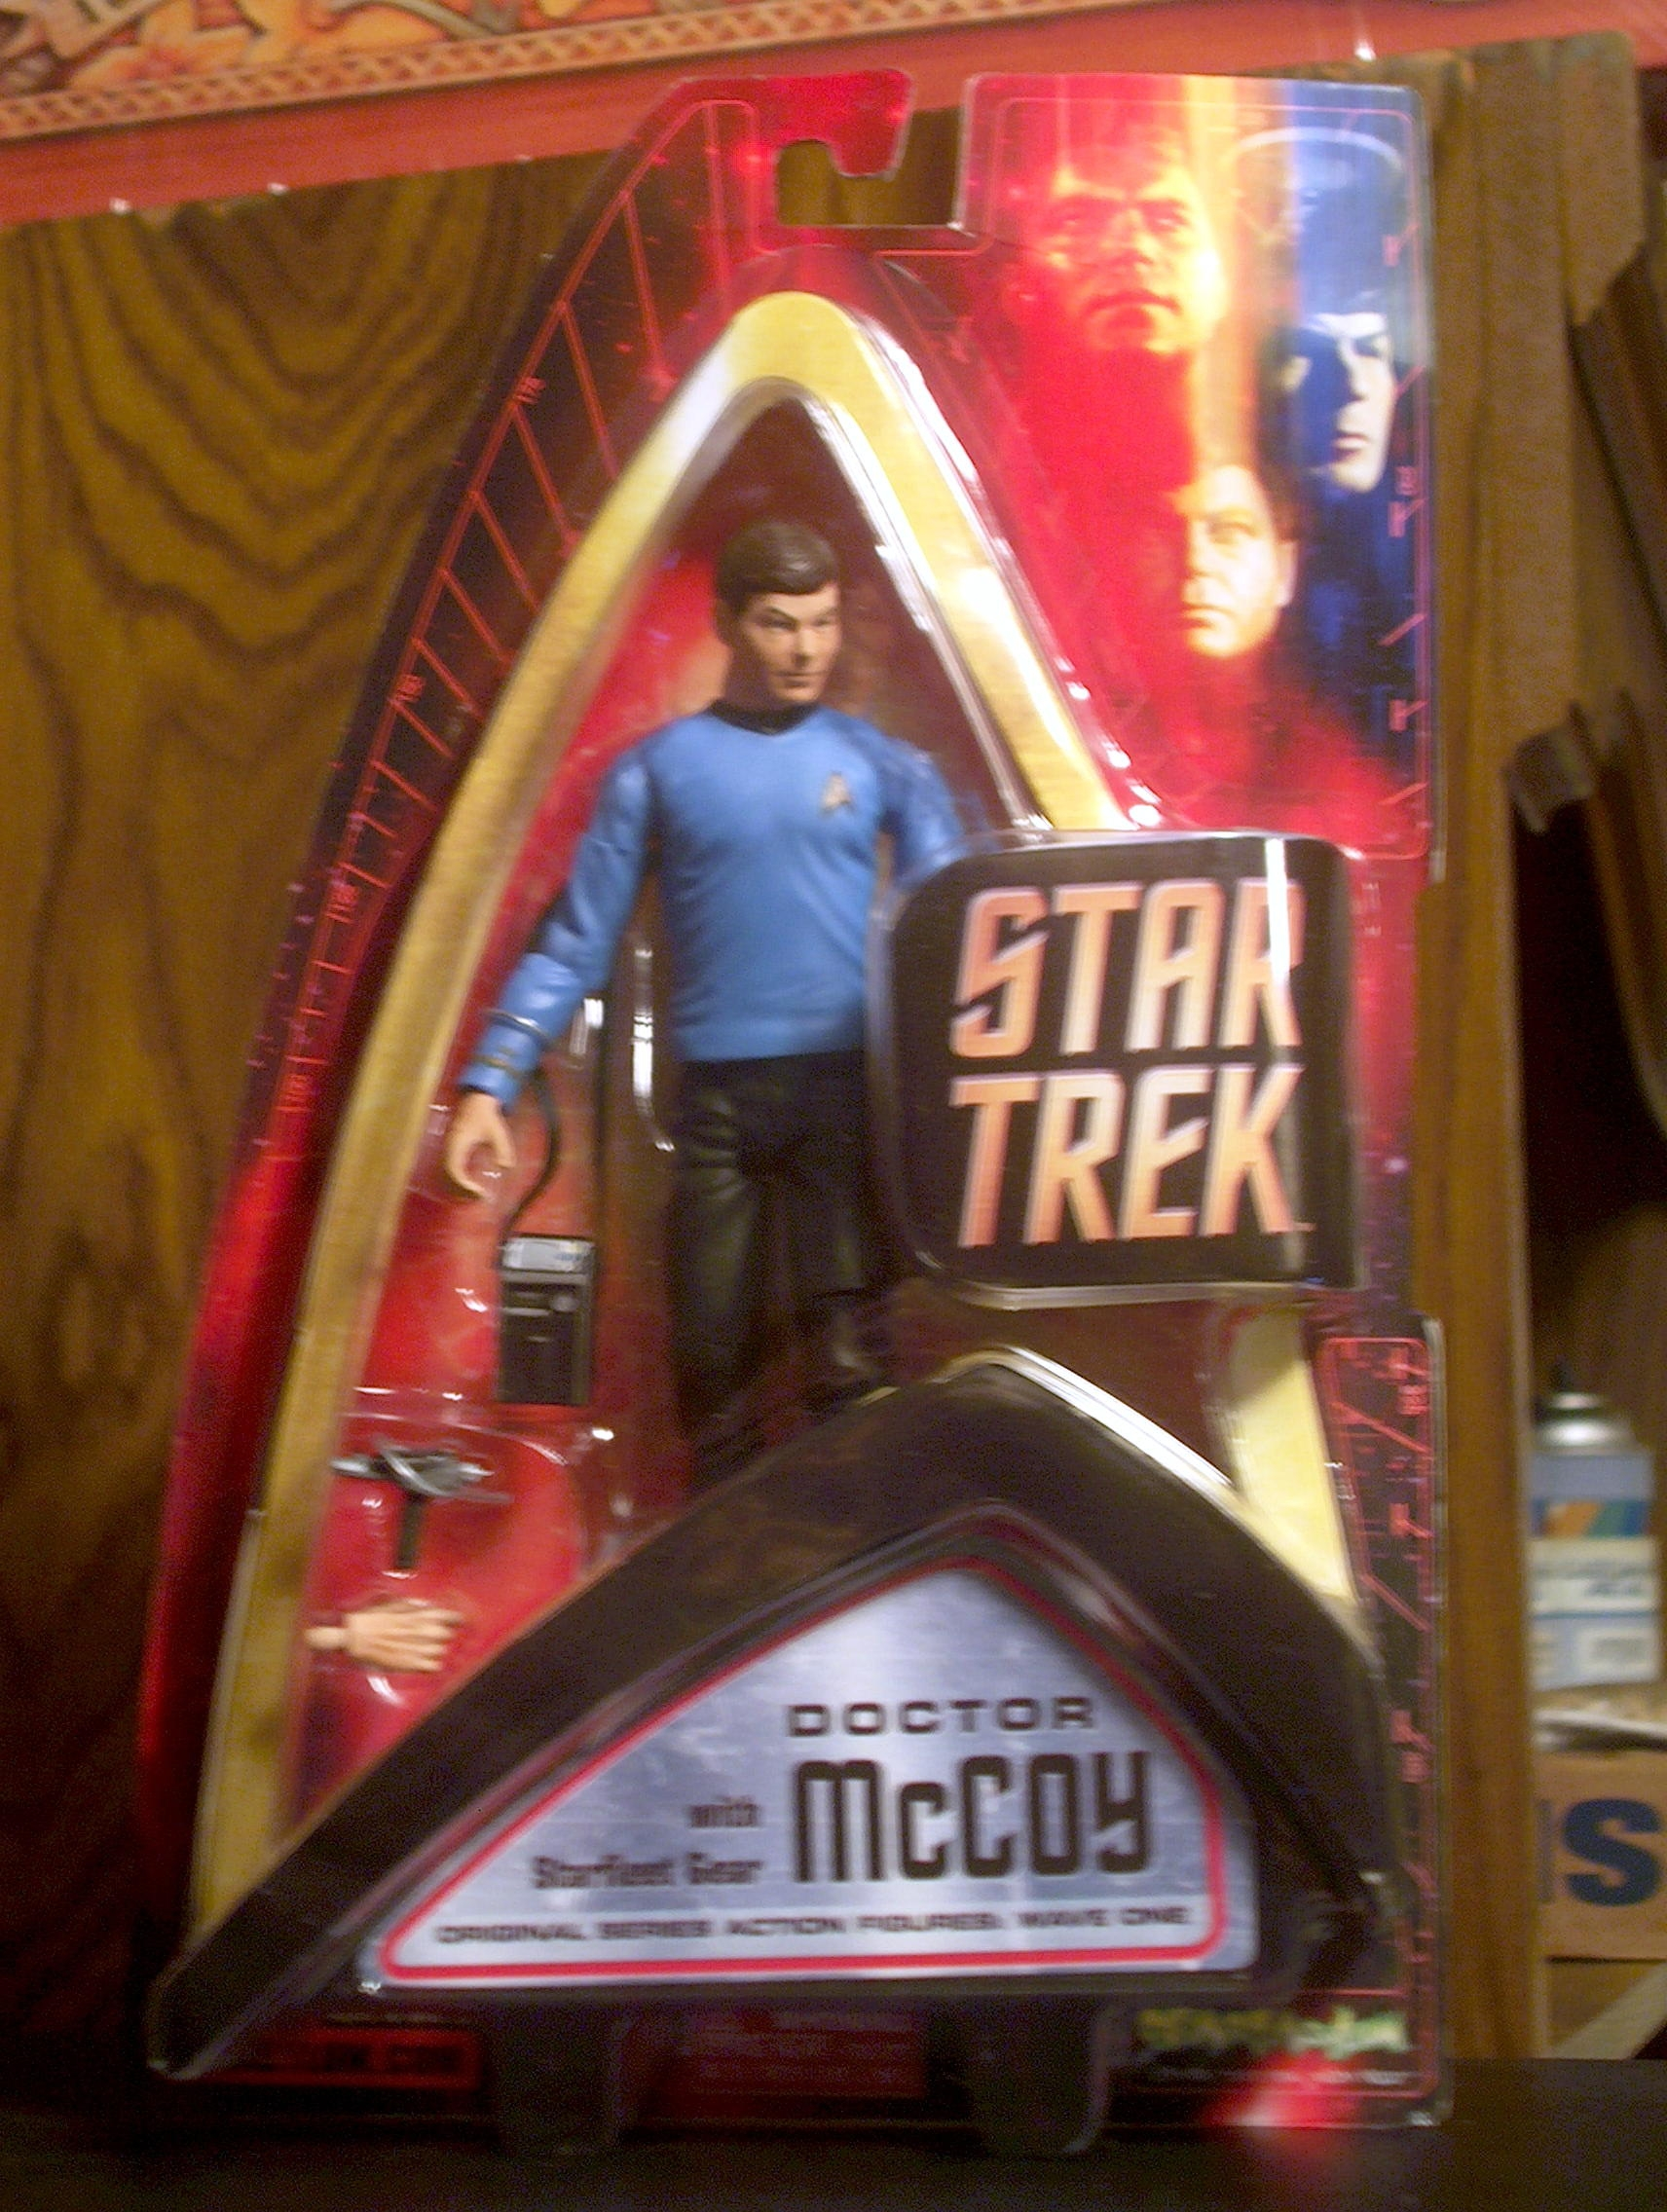 Doctor McCoy with Starfleet Gear